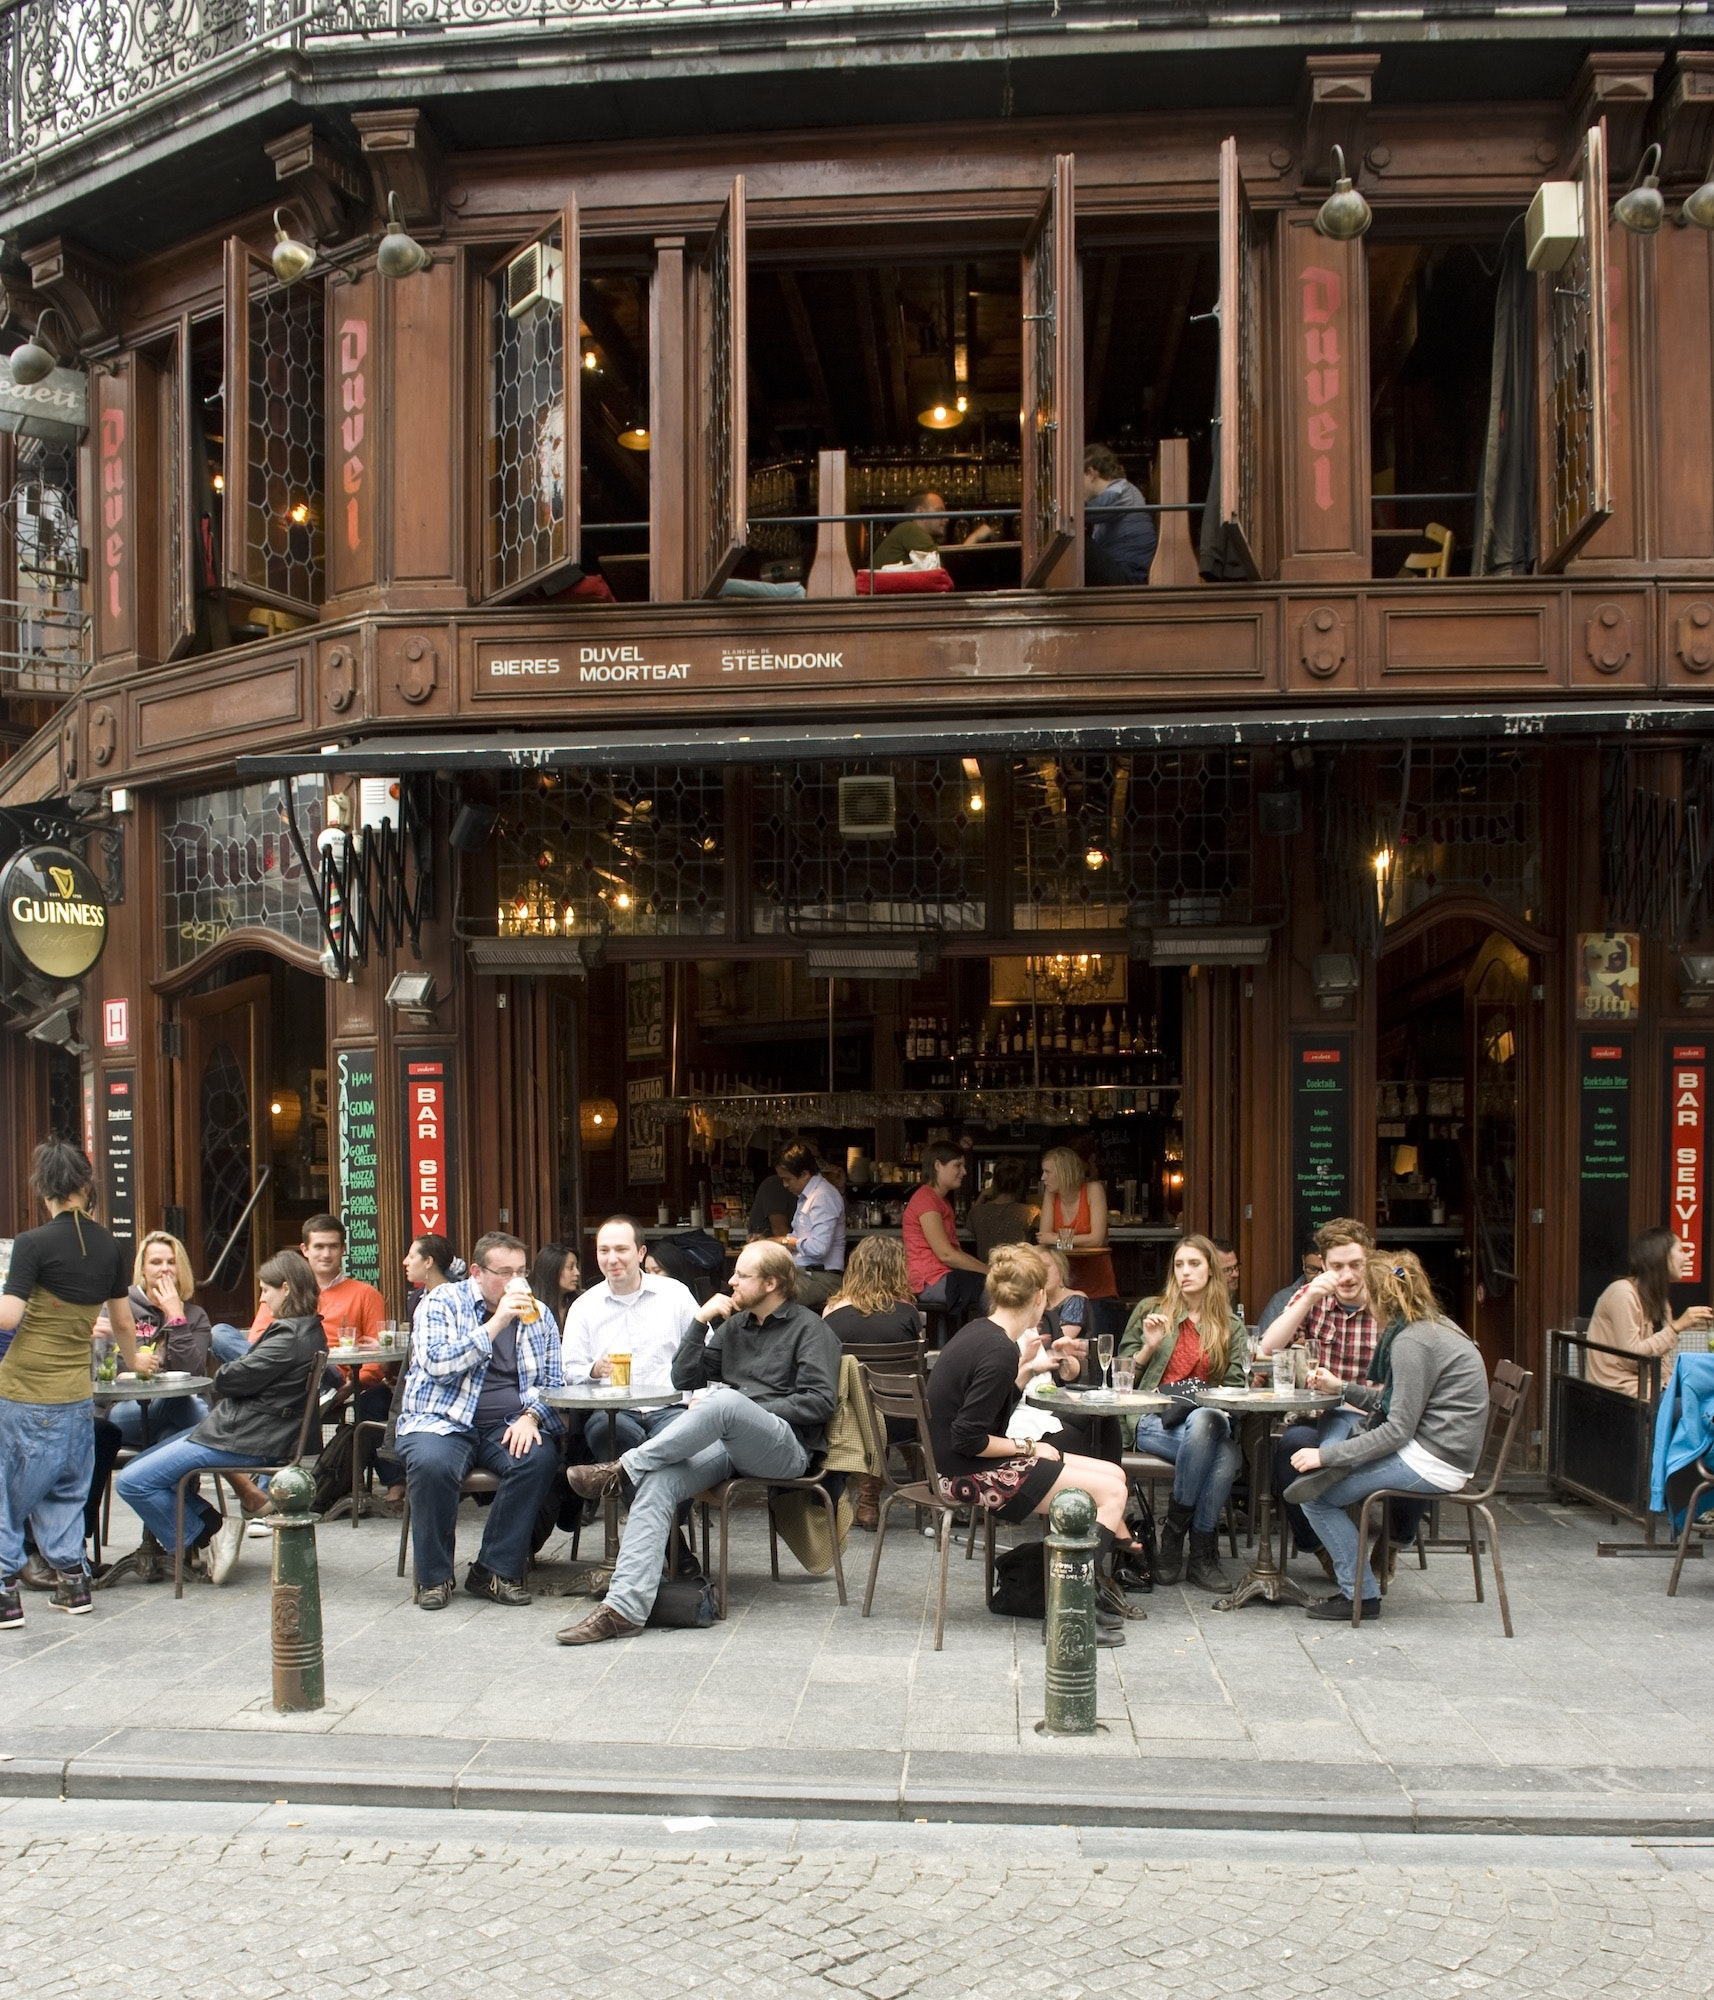 You can taste the diversity of Belgian beers at Brussels bars like Mappa Mundo (pictured above).